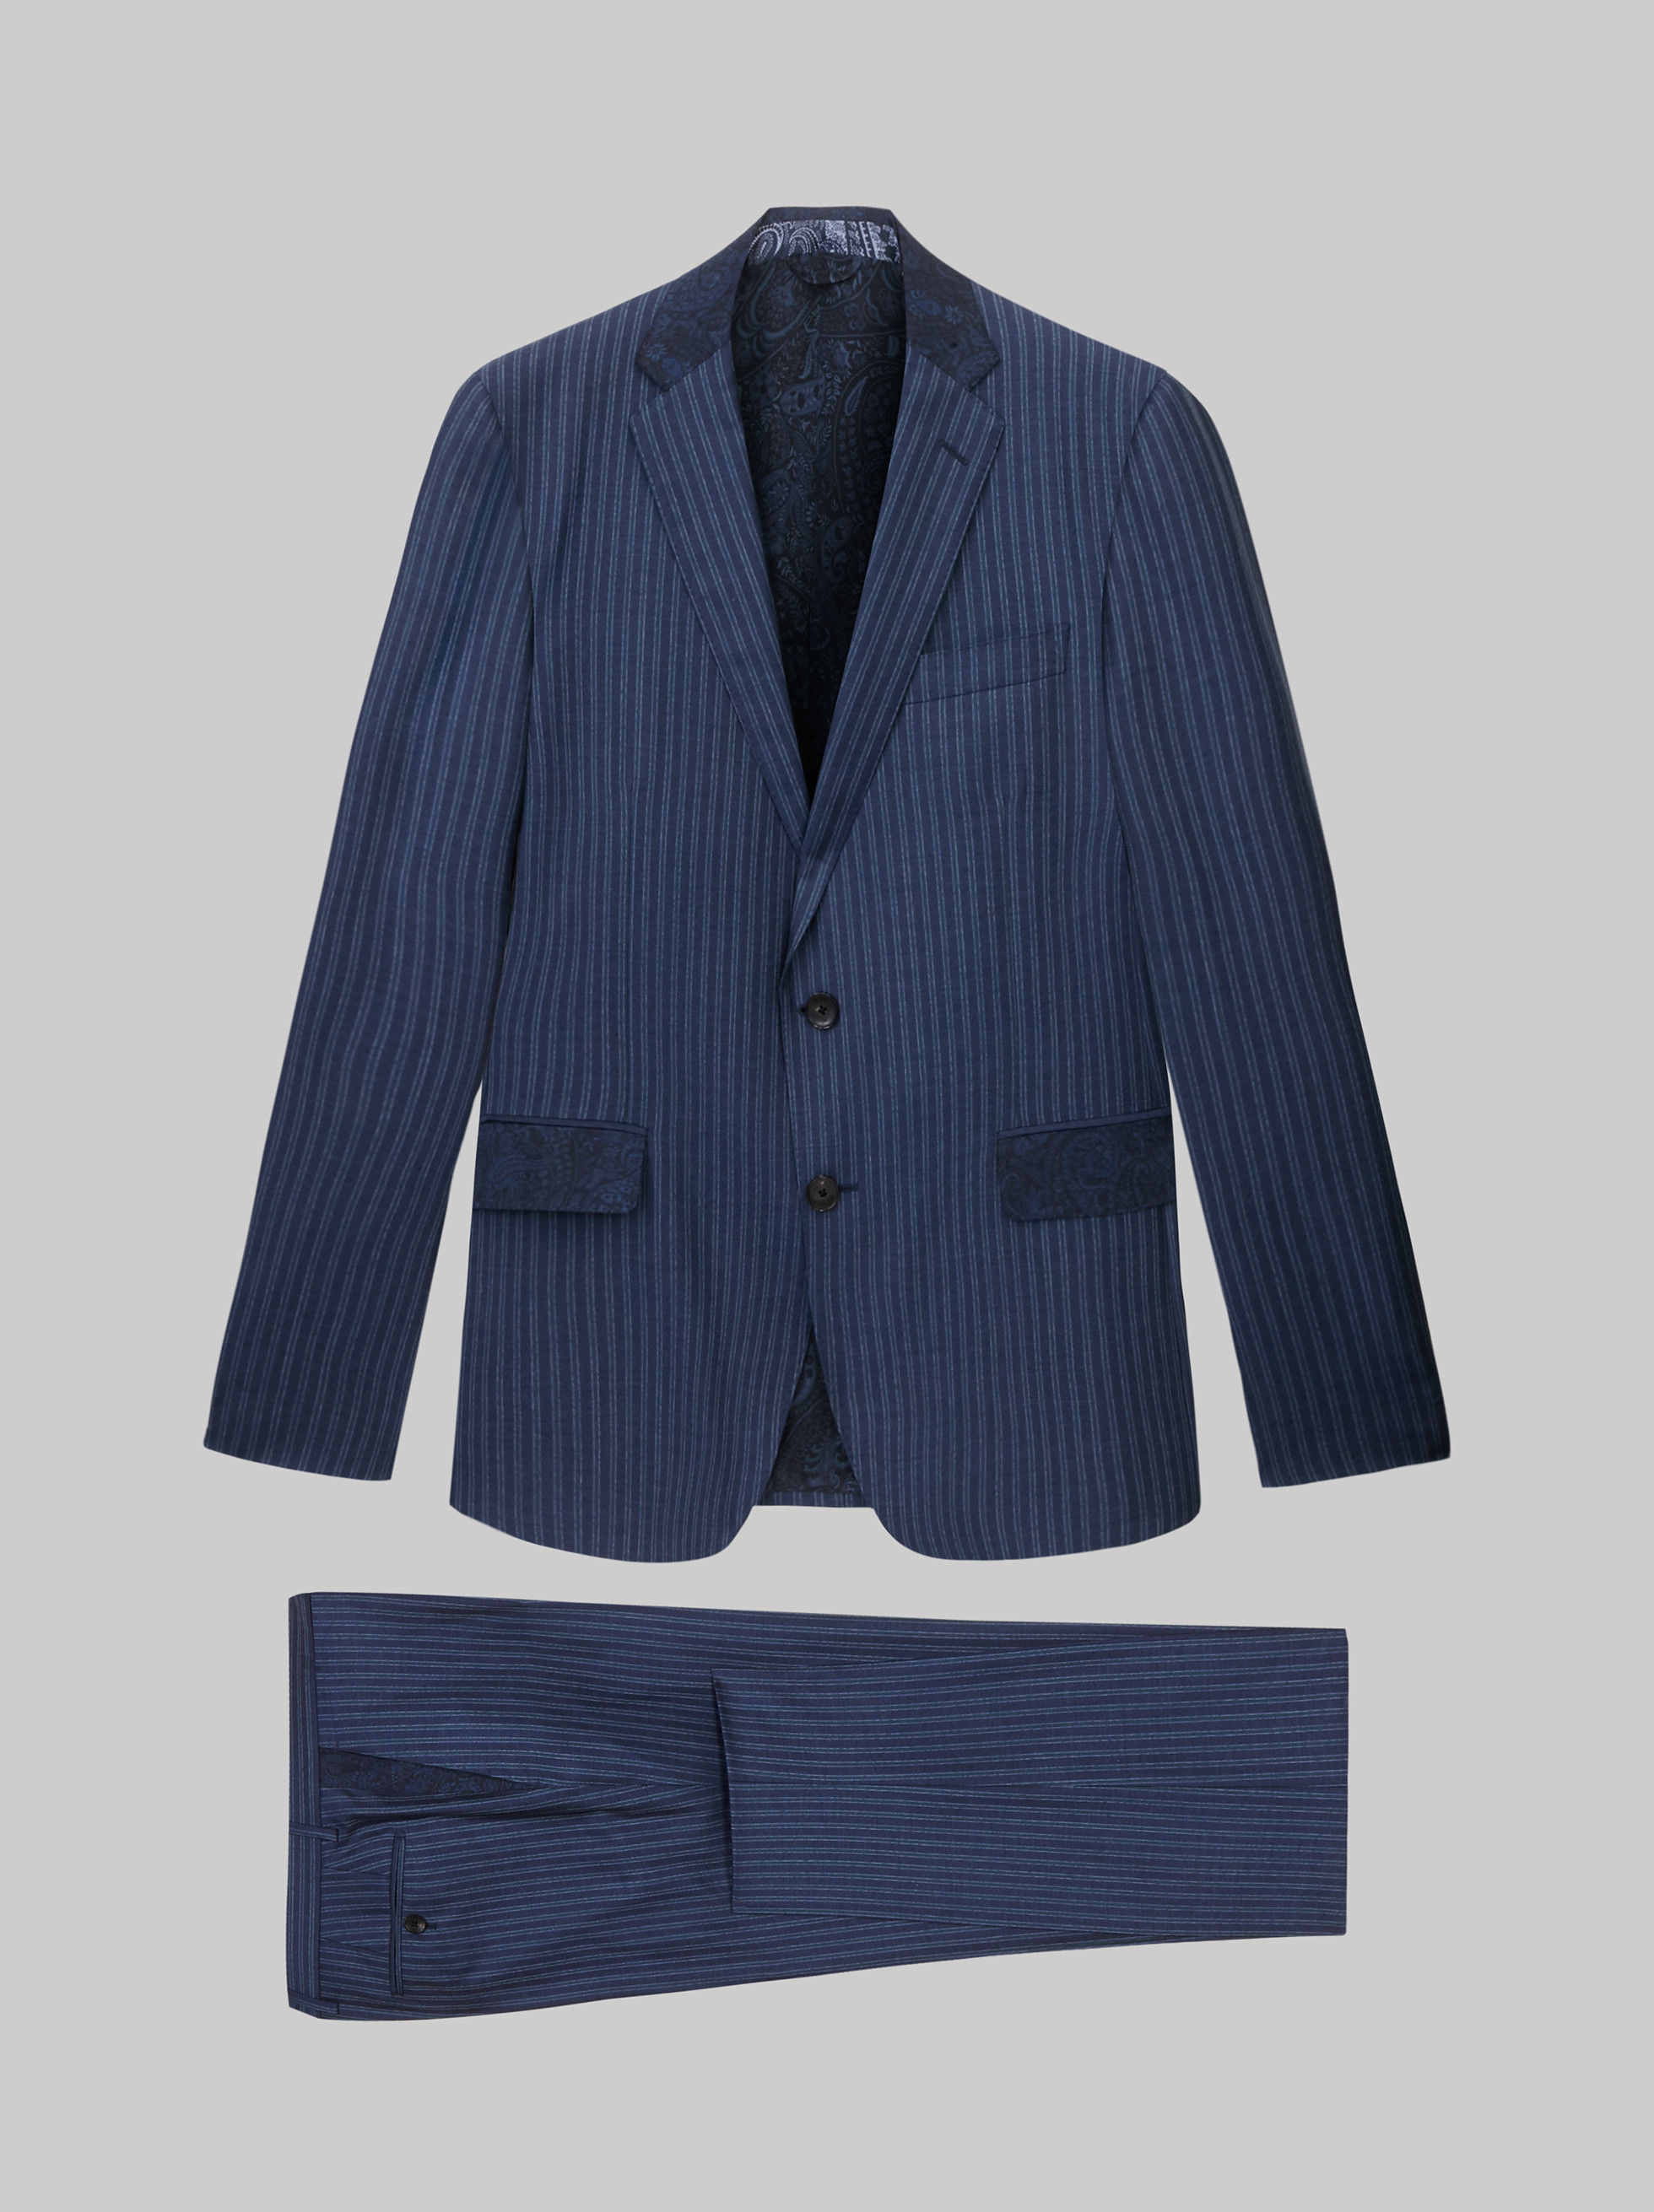 PINSTRIPE SUIT WITH PAISLEY DETAILS